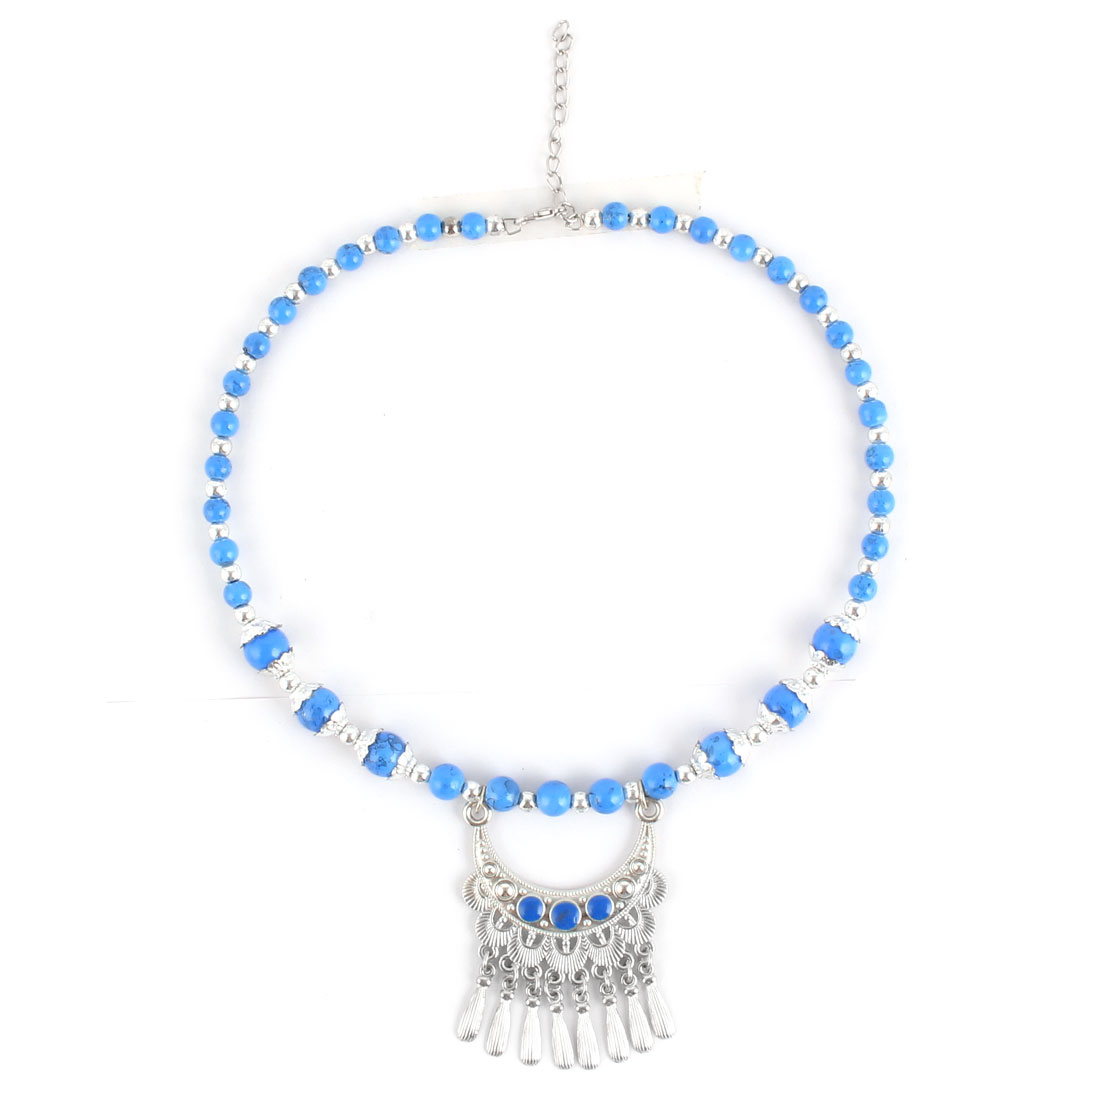 Home Shopping Woman Lady Plastic Bead Ethnic Style Pendant Necklet Necklace